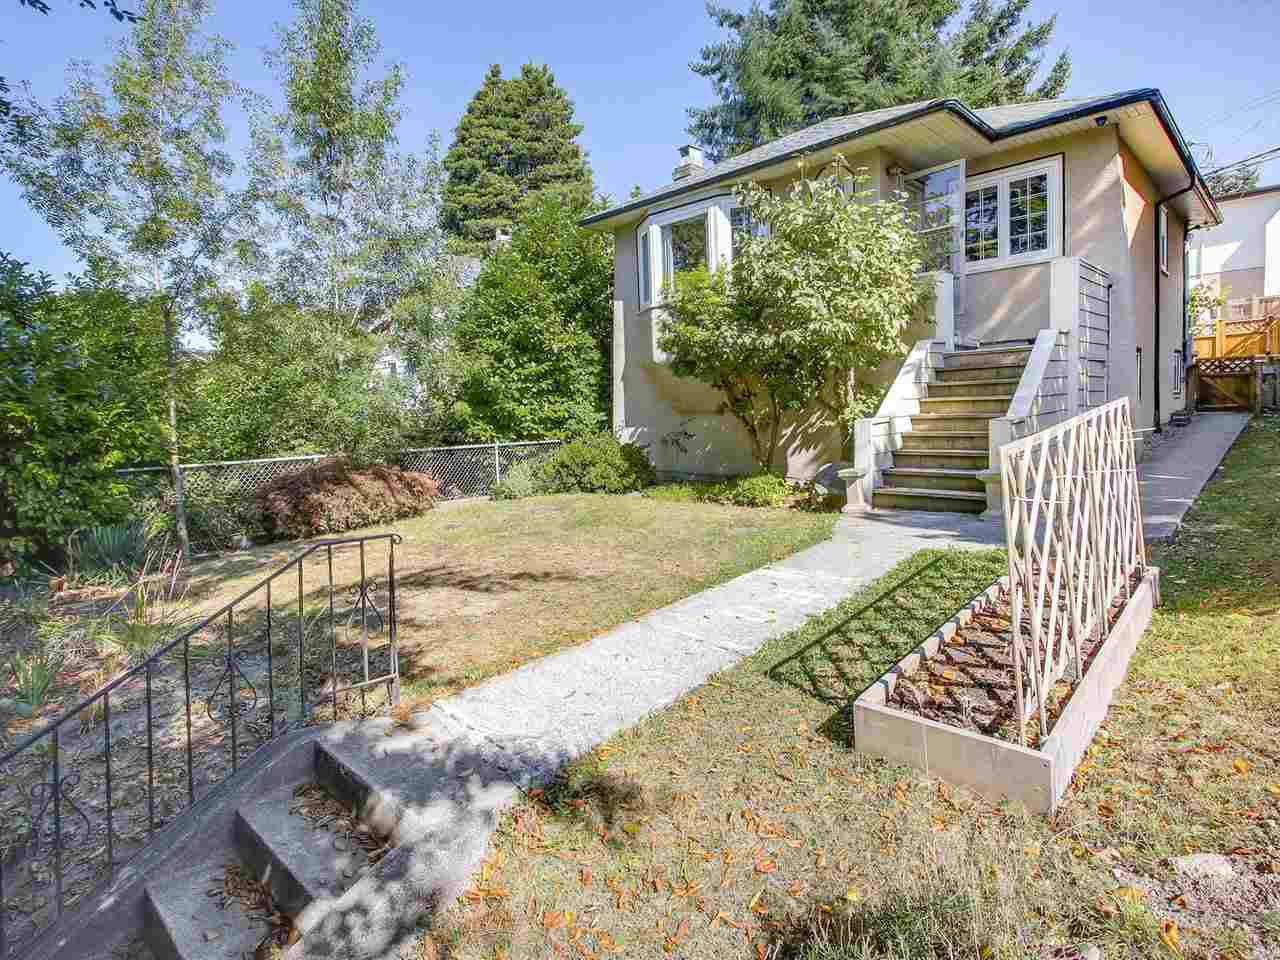 Main Photo: 4384 NANAIMO Street in Vancouver: Collingwood VE House for sale (Vancouver East)  : MLS®# R2202934